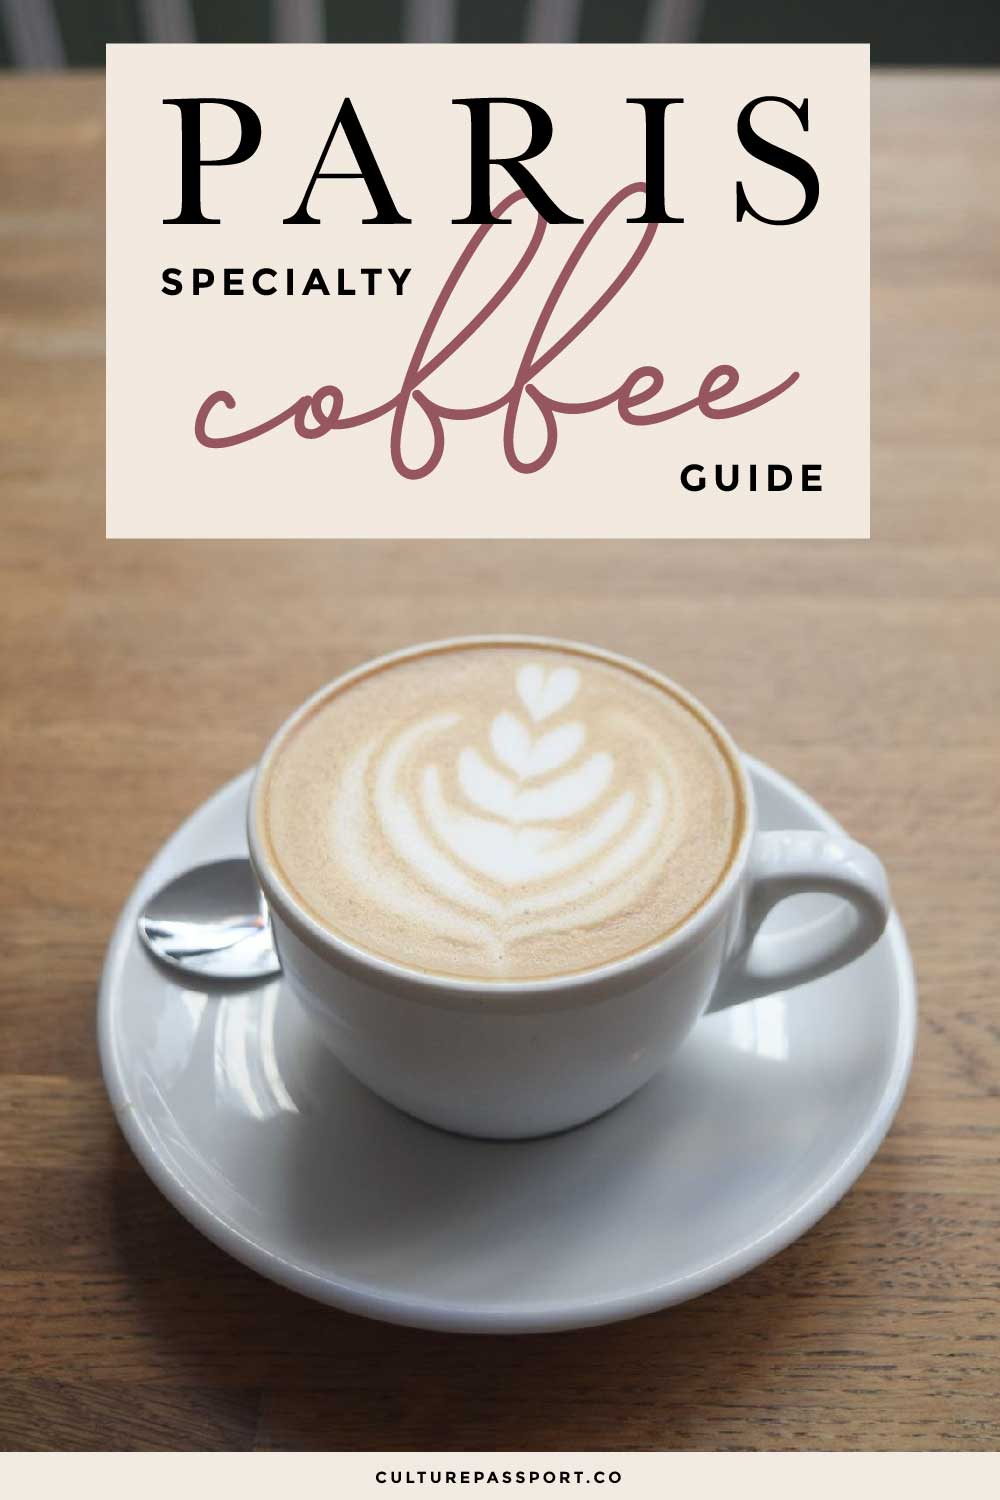 Paris Specialty Coffee Guide #coffeeaddict #coffeelovers #paristips